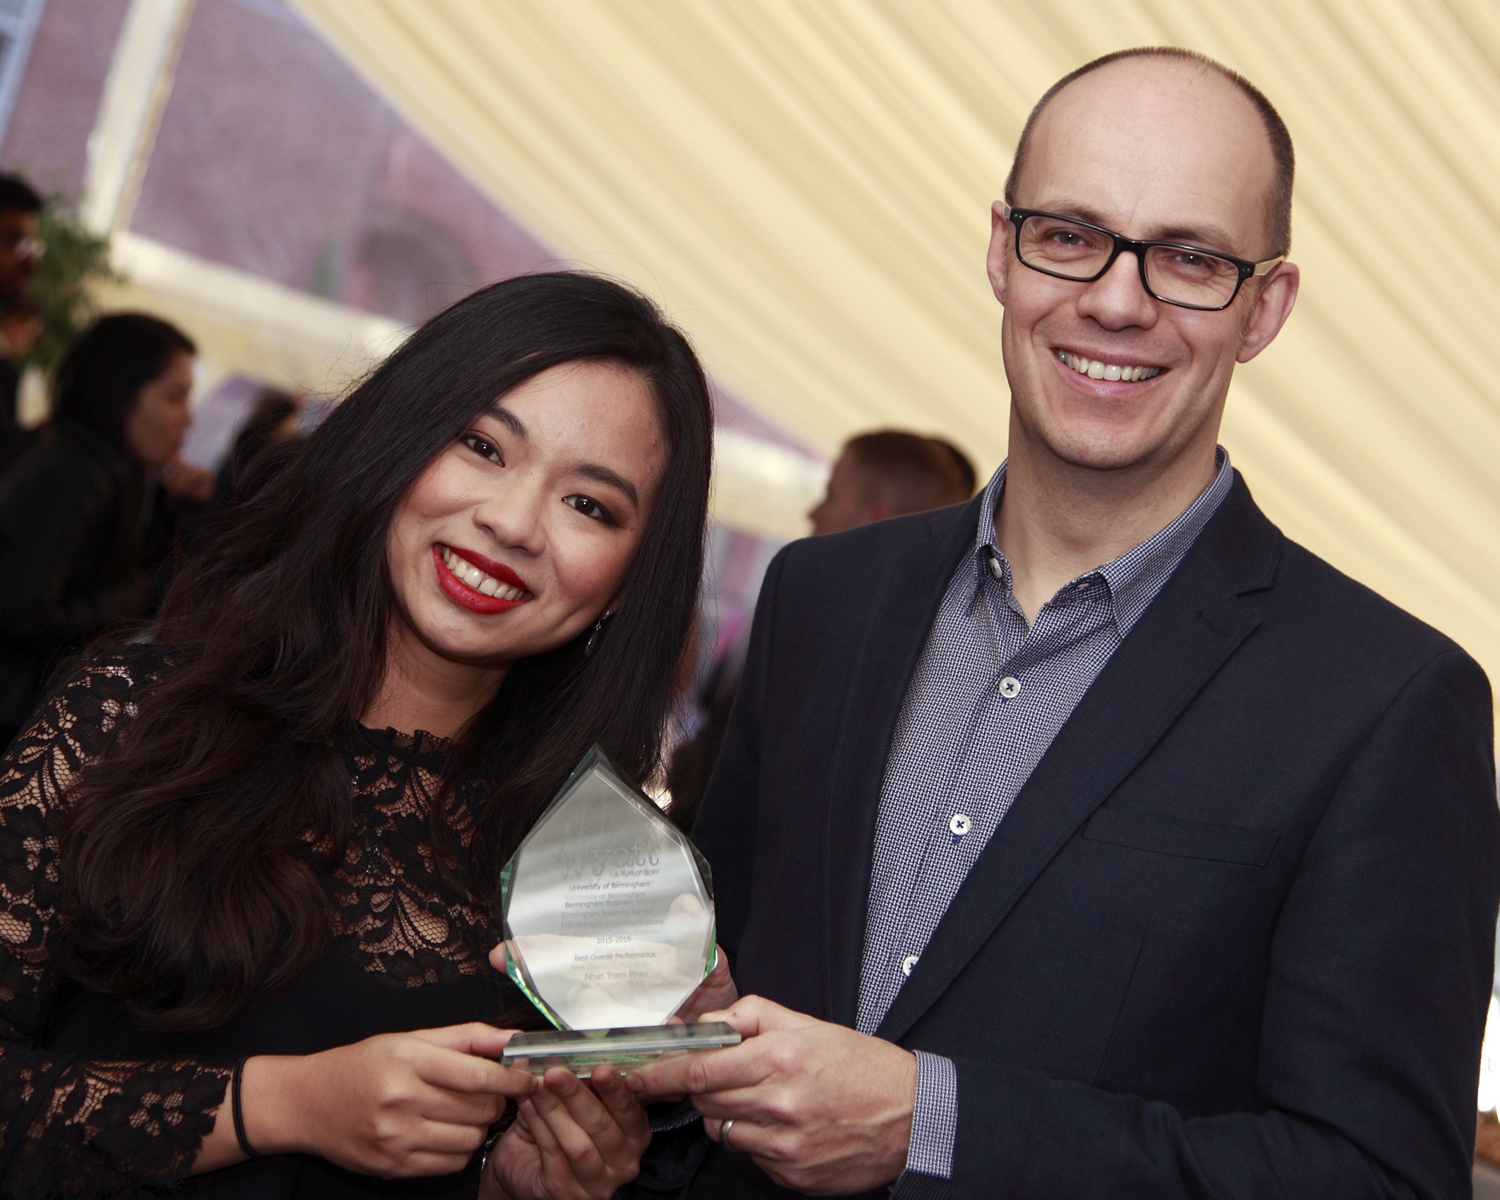 Wyatt's strategy and integrated services director, Jeremy Merkel, with the 2016 Wyatt International Award winner, Nhat Tram Phan